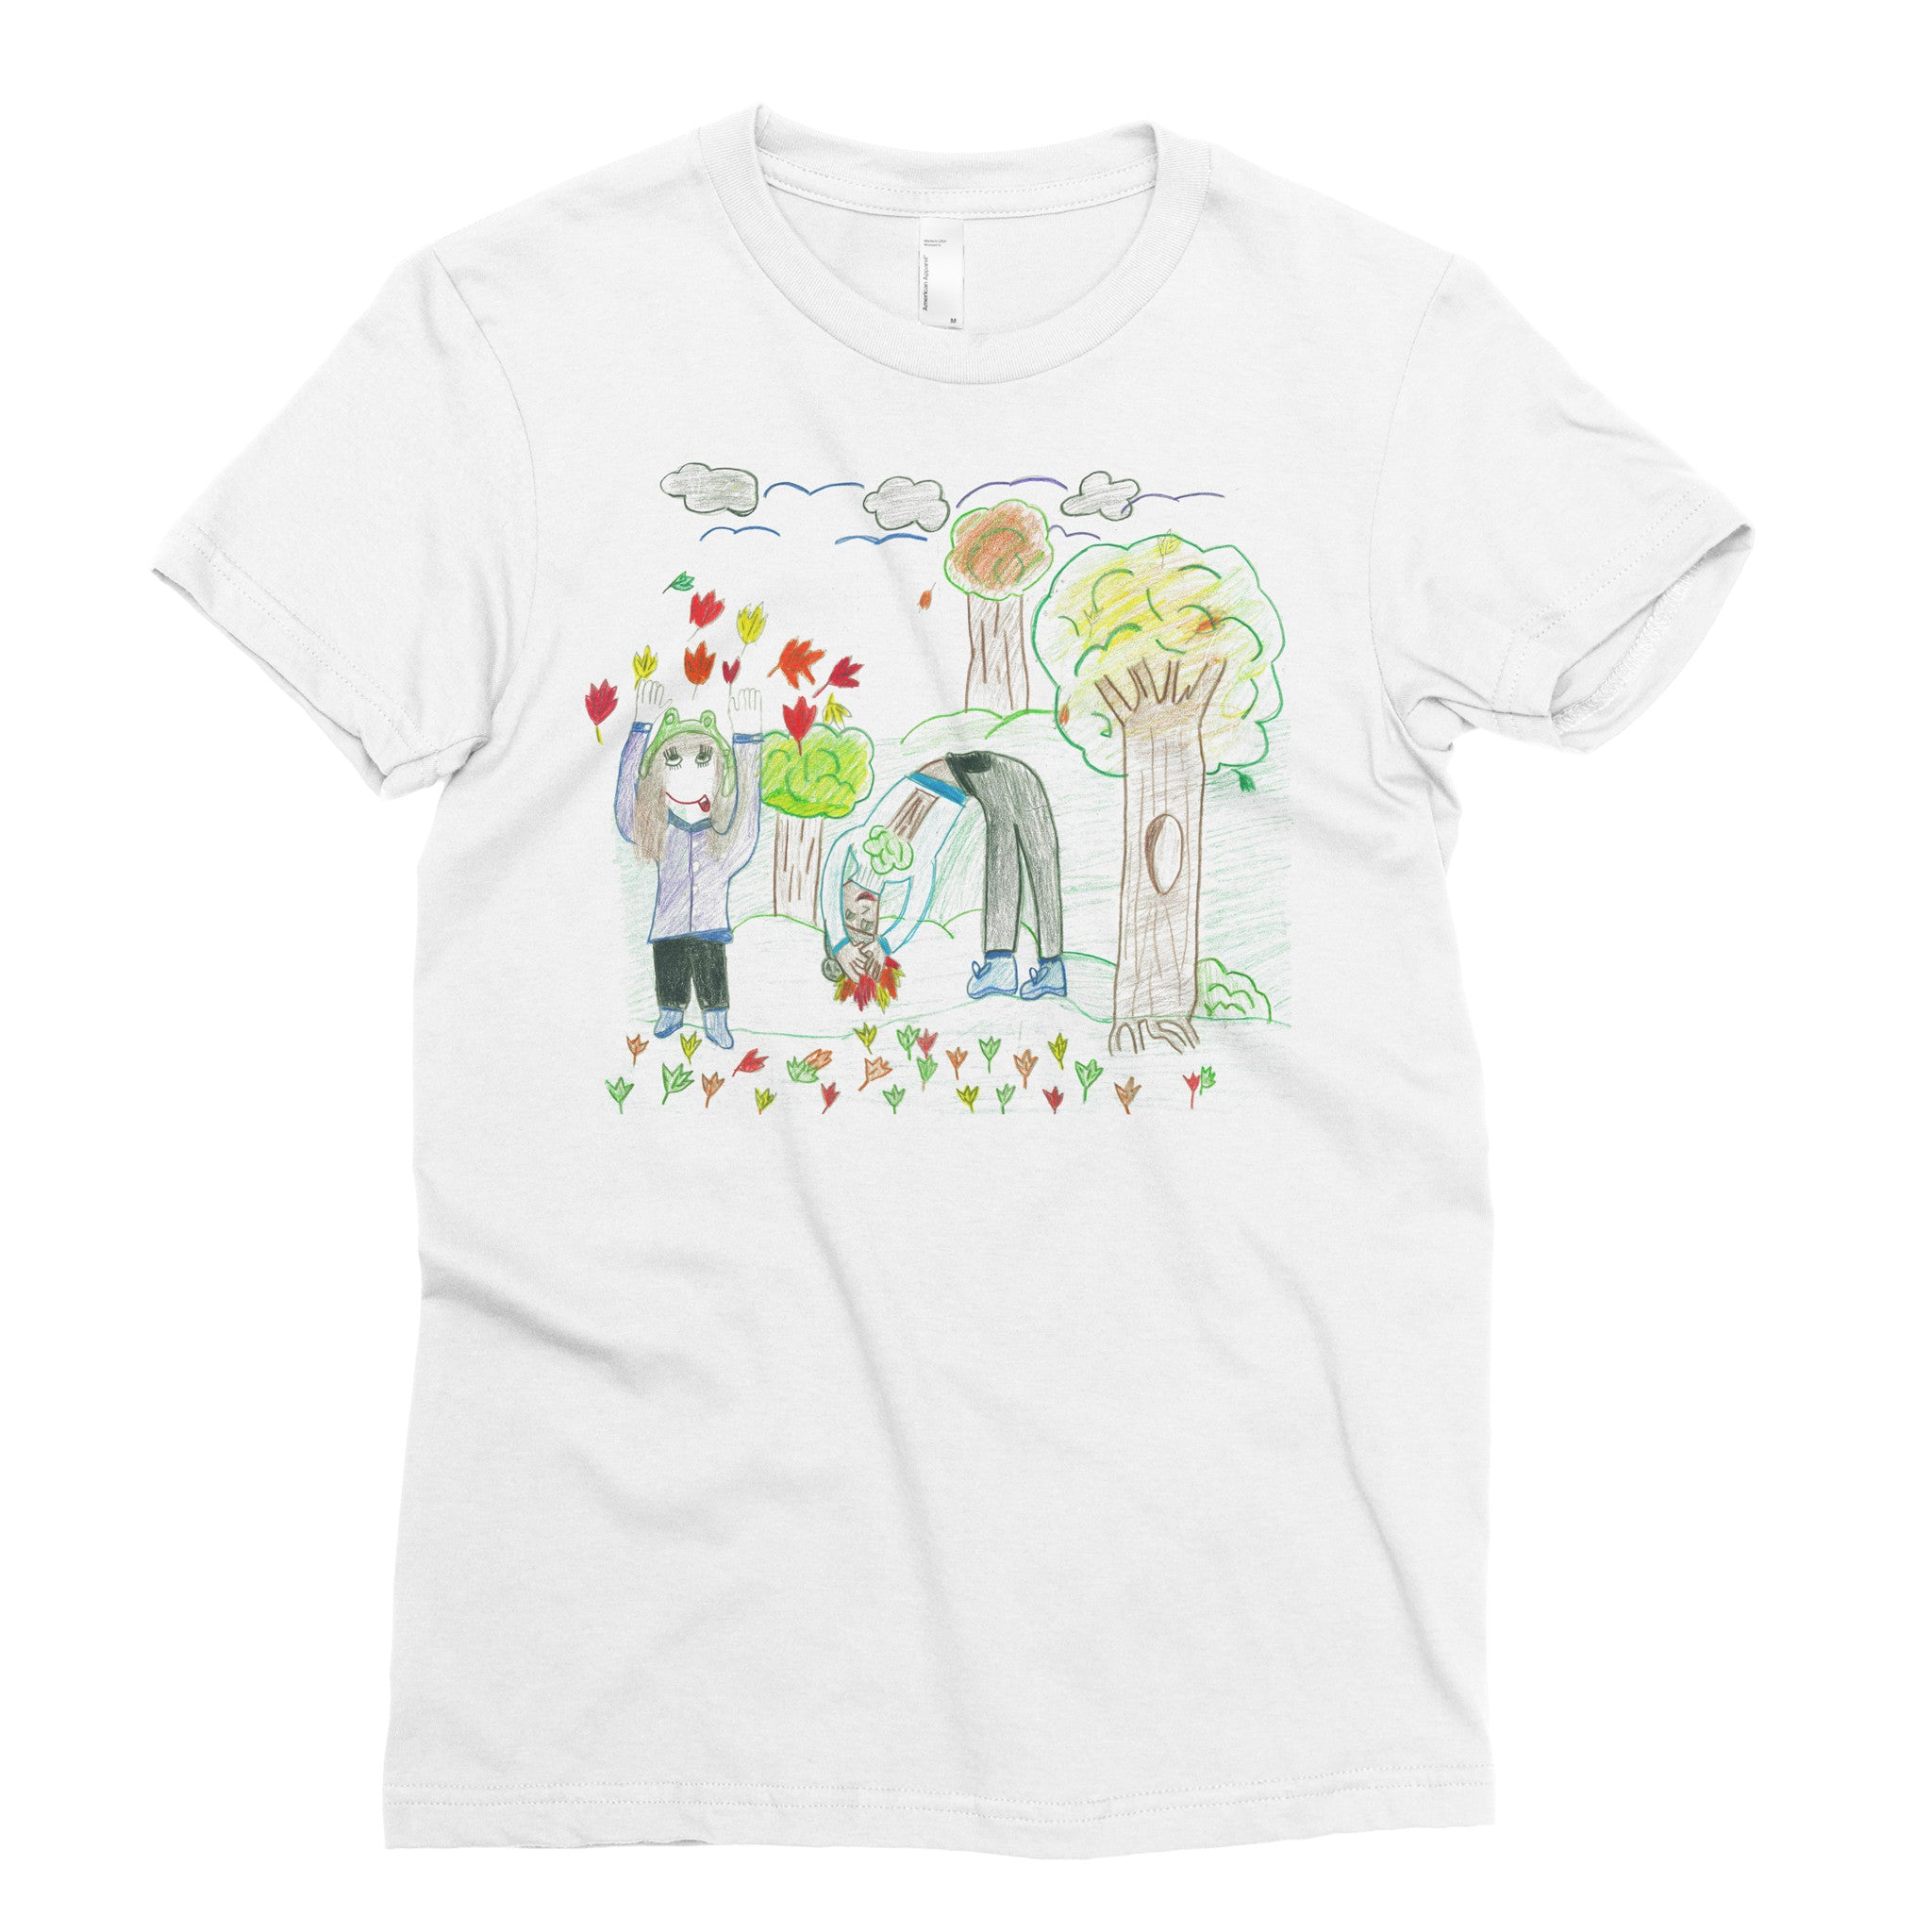 Ann Lorie, 5th grade - Adult T-shirt - Rightside Shirts